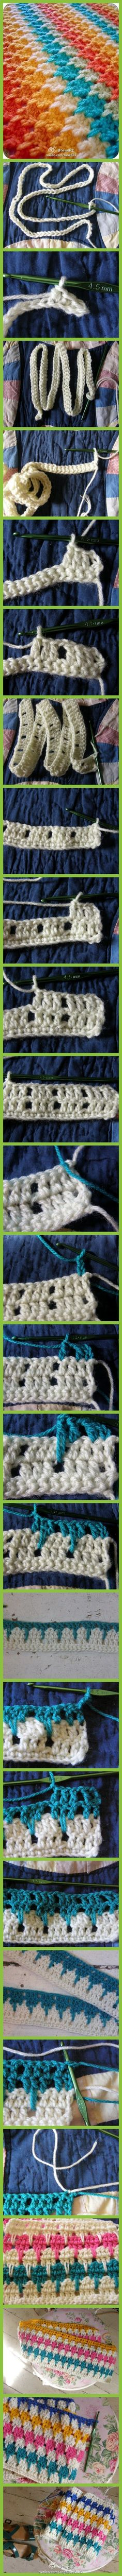 Crochet Stitch - Tutorial for Crochet, Knitting, Crafts. Diy Tricot Crochet, Crochet Amigurumi, Knit Or Crochet, Learn To Crochet, Crochet Crafts, Crochet Hooks, Crochet Afghans, Crochet Blankets, Diy Crafts